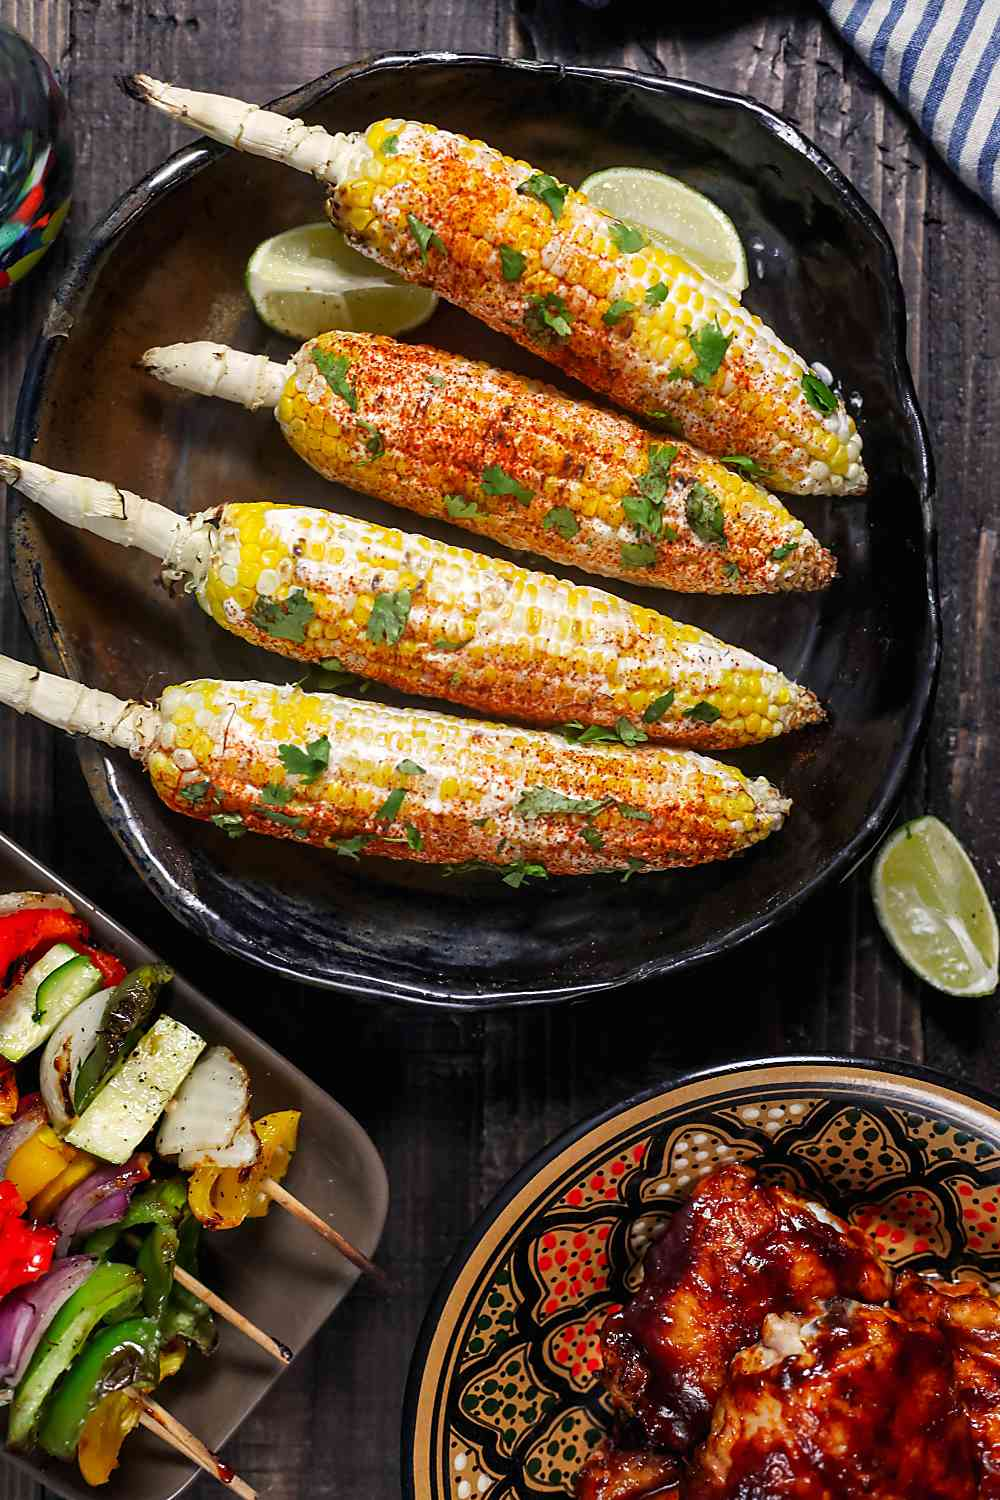 Grilled Corn on the Cob with Goat Cheese and Smoked Paprika